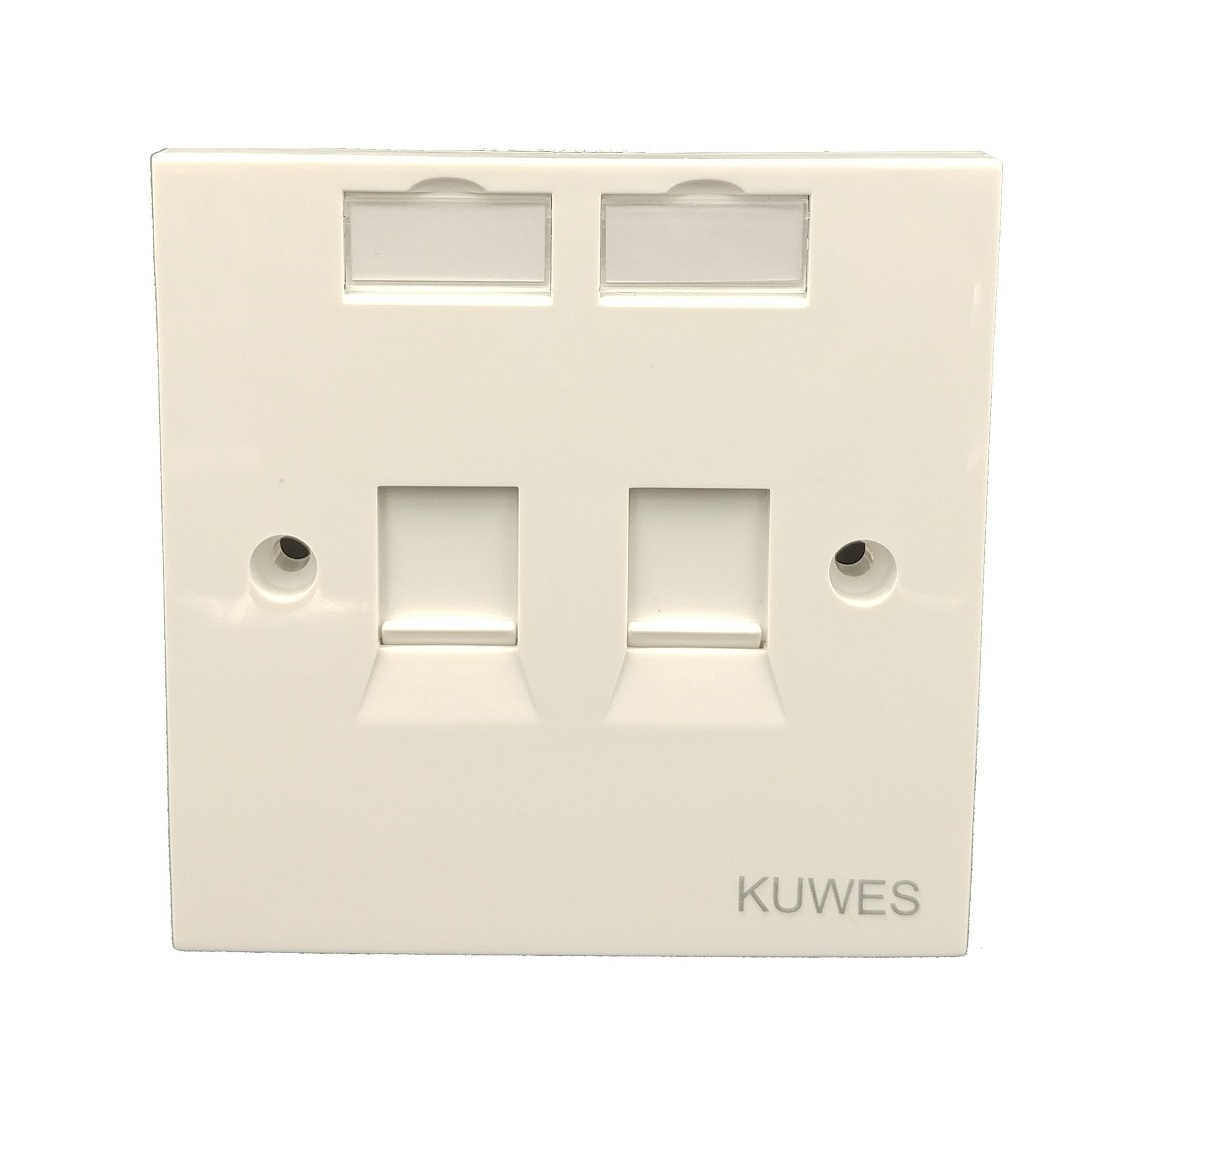 Kuwes UK Double Outlet Faceplate 86x86mm